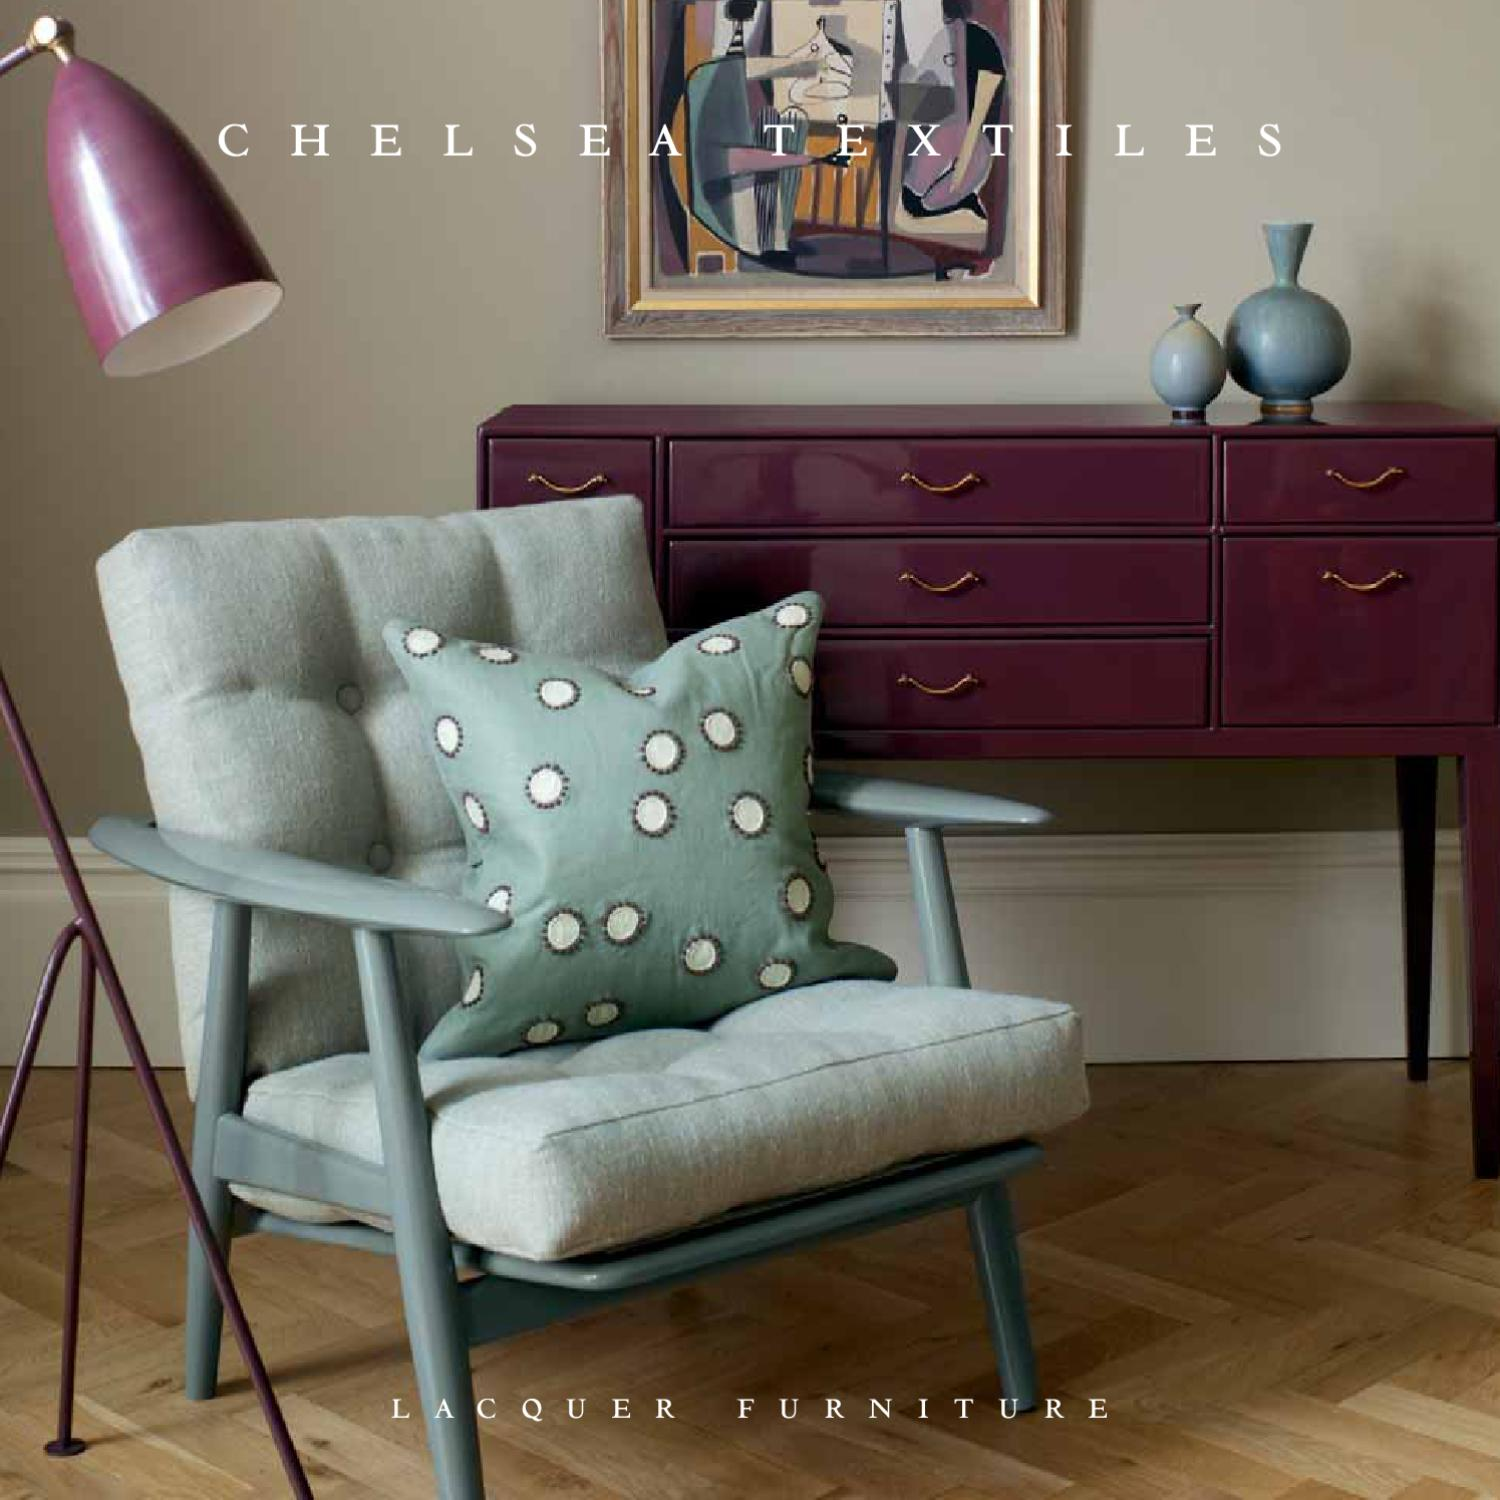 Chelsea Textiles   Lacquer Furniture By Chelsea Textiles   Issuu